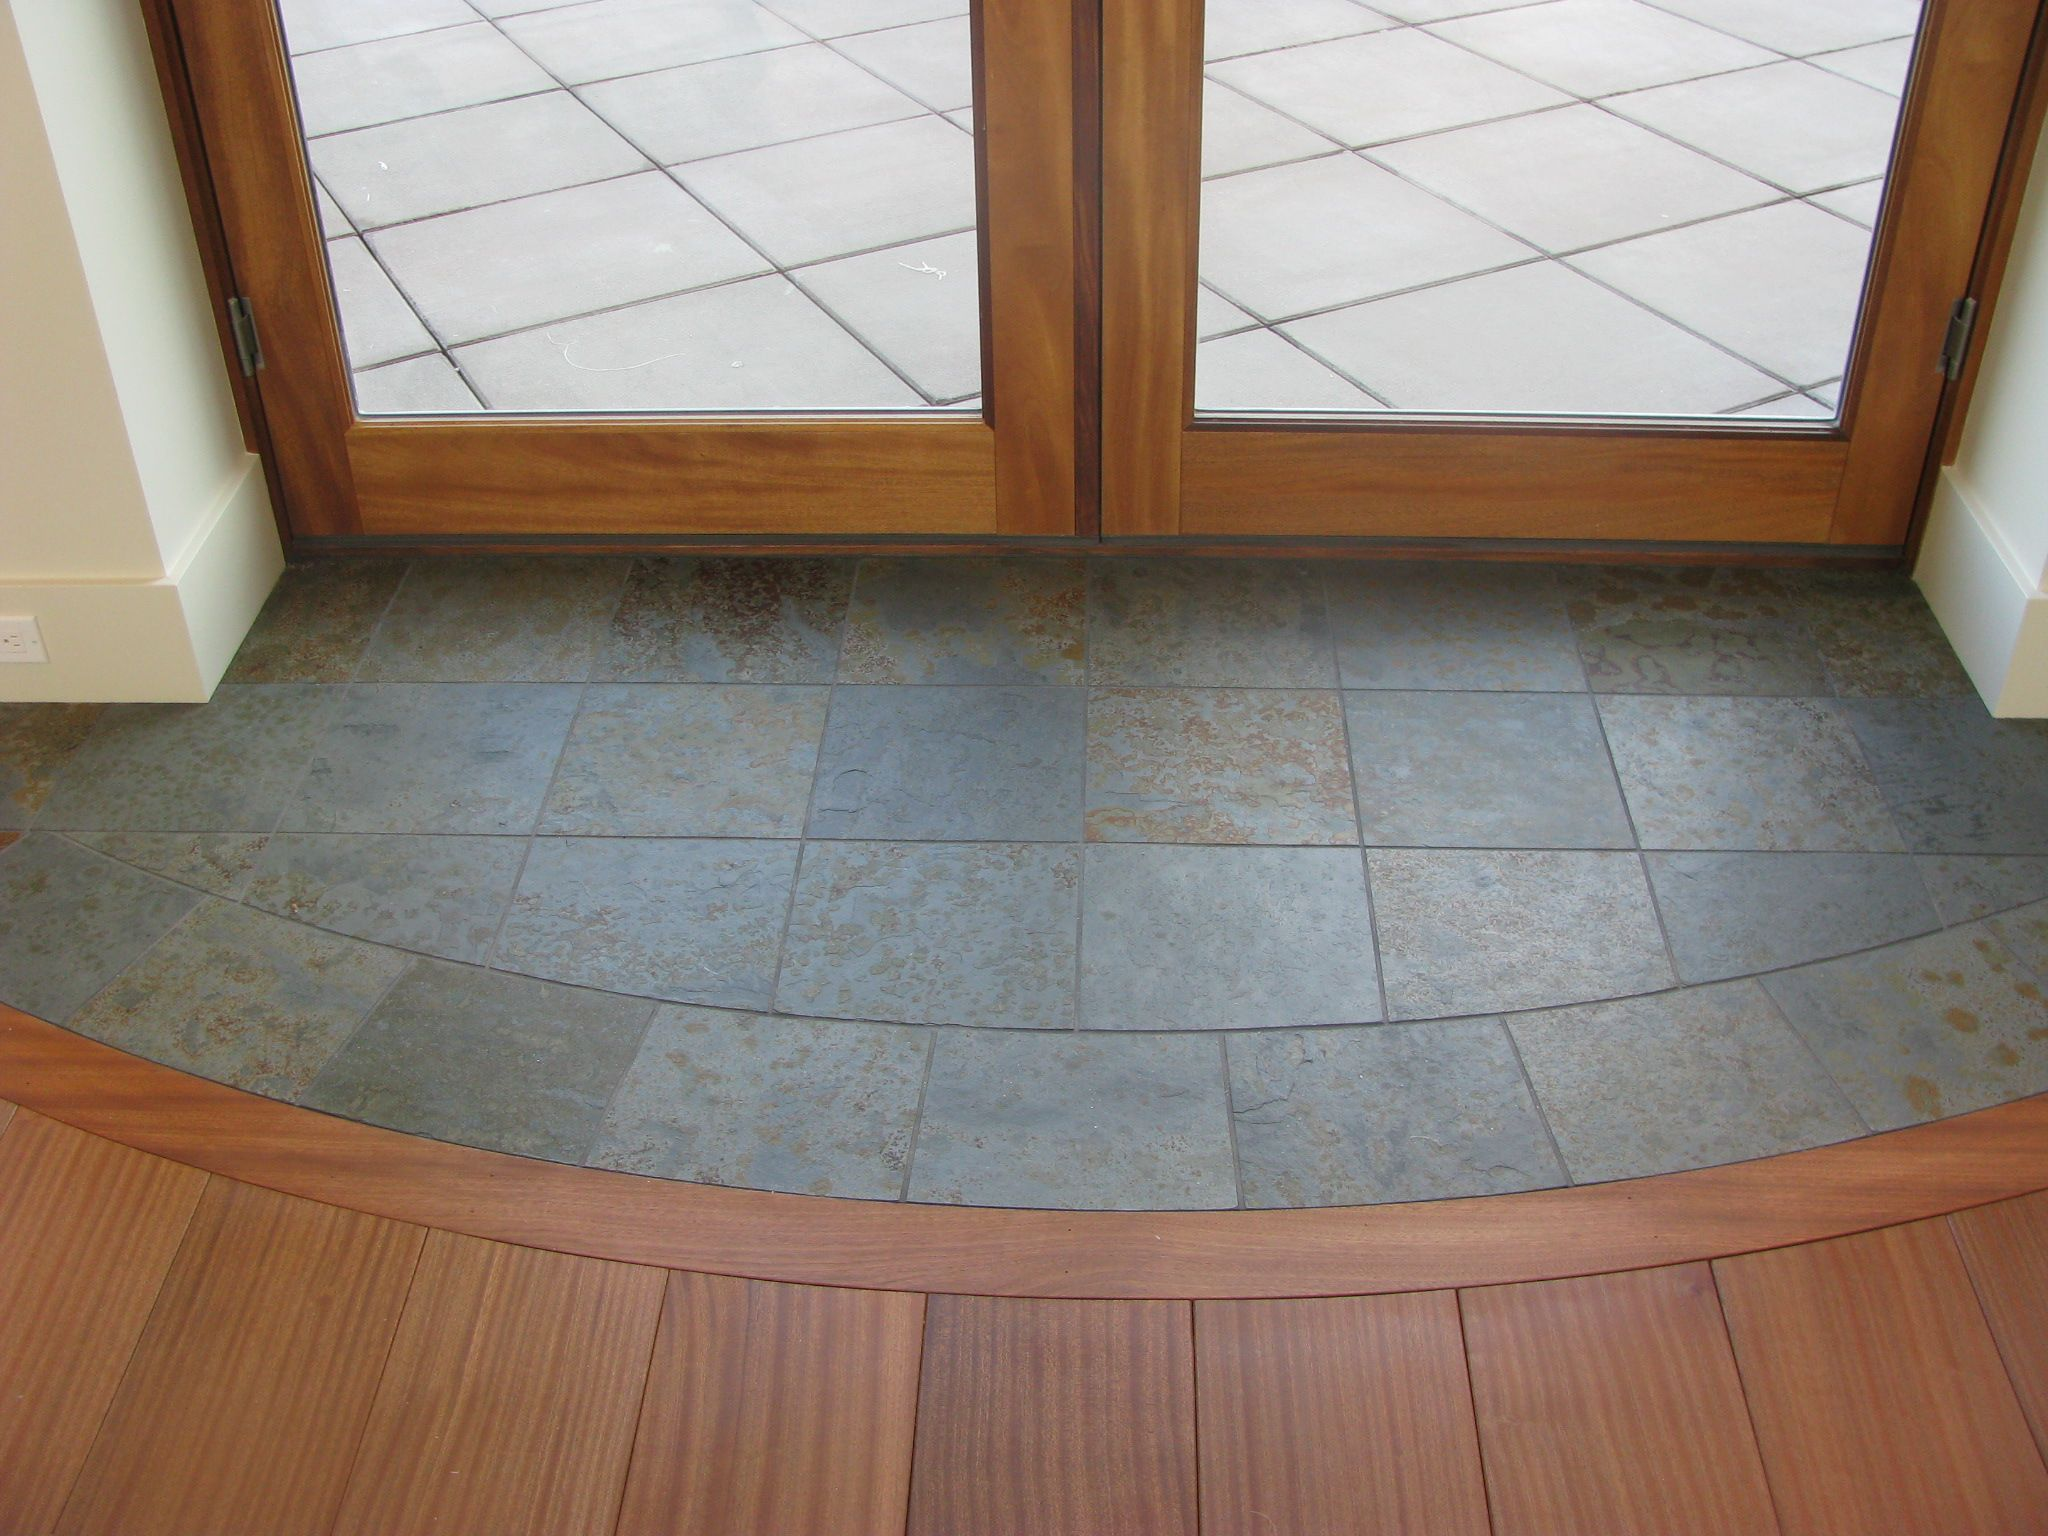 Foyer Tile Floor : Slate entryway to protect hardwood floors at french door